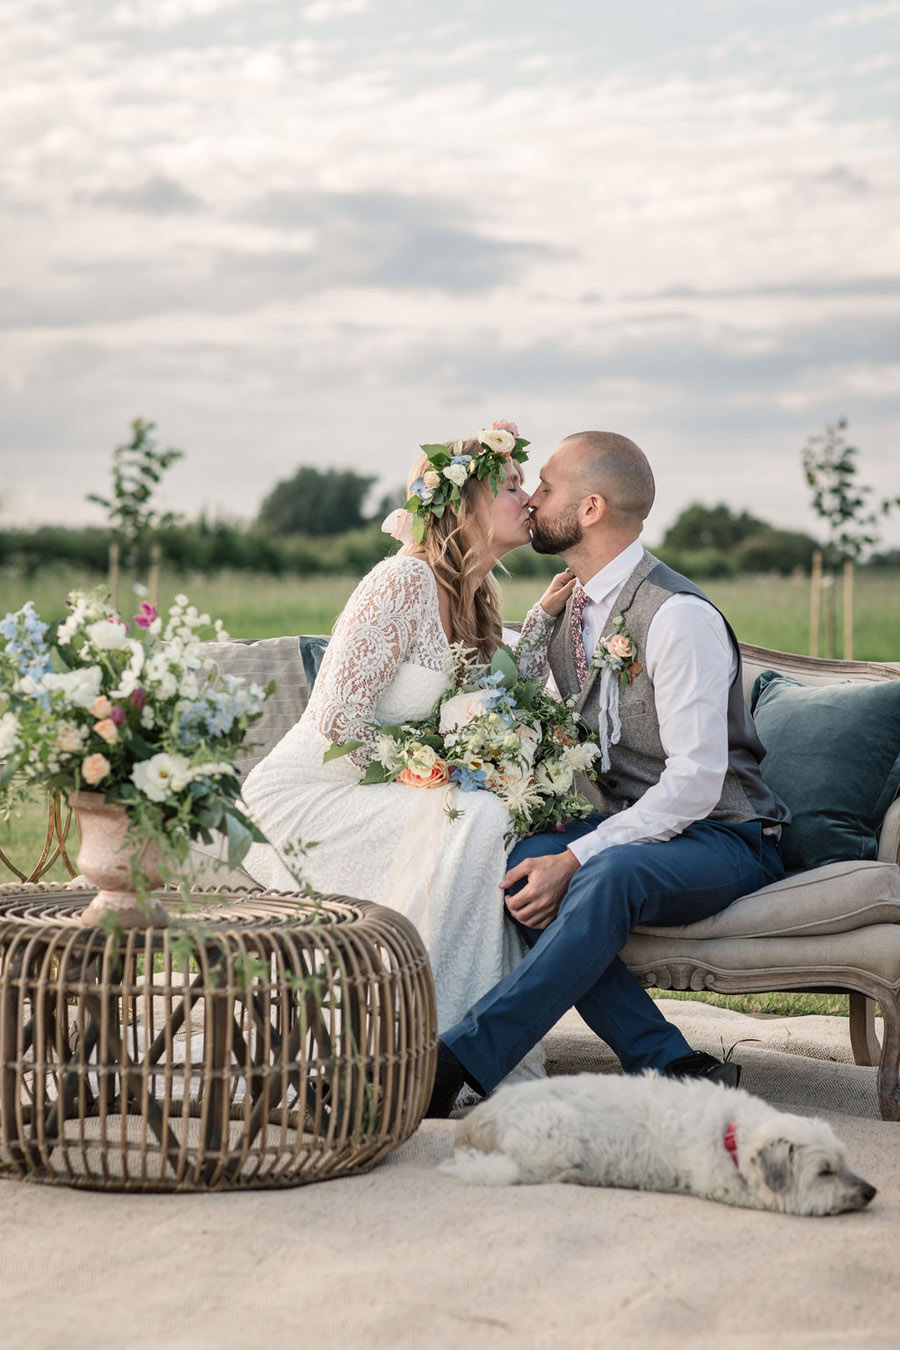 Evening sunset wedding inspiration at Willow Grange Farm, with Becky Harley Photography (39)